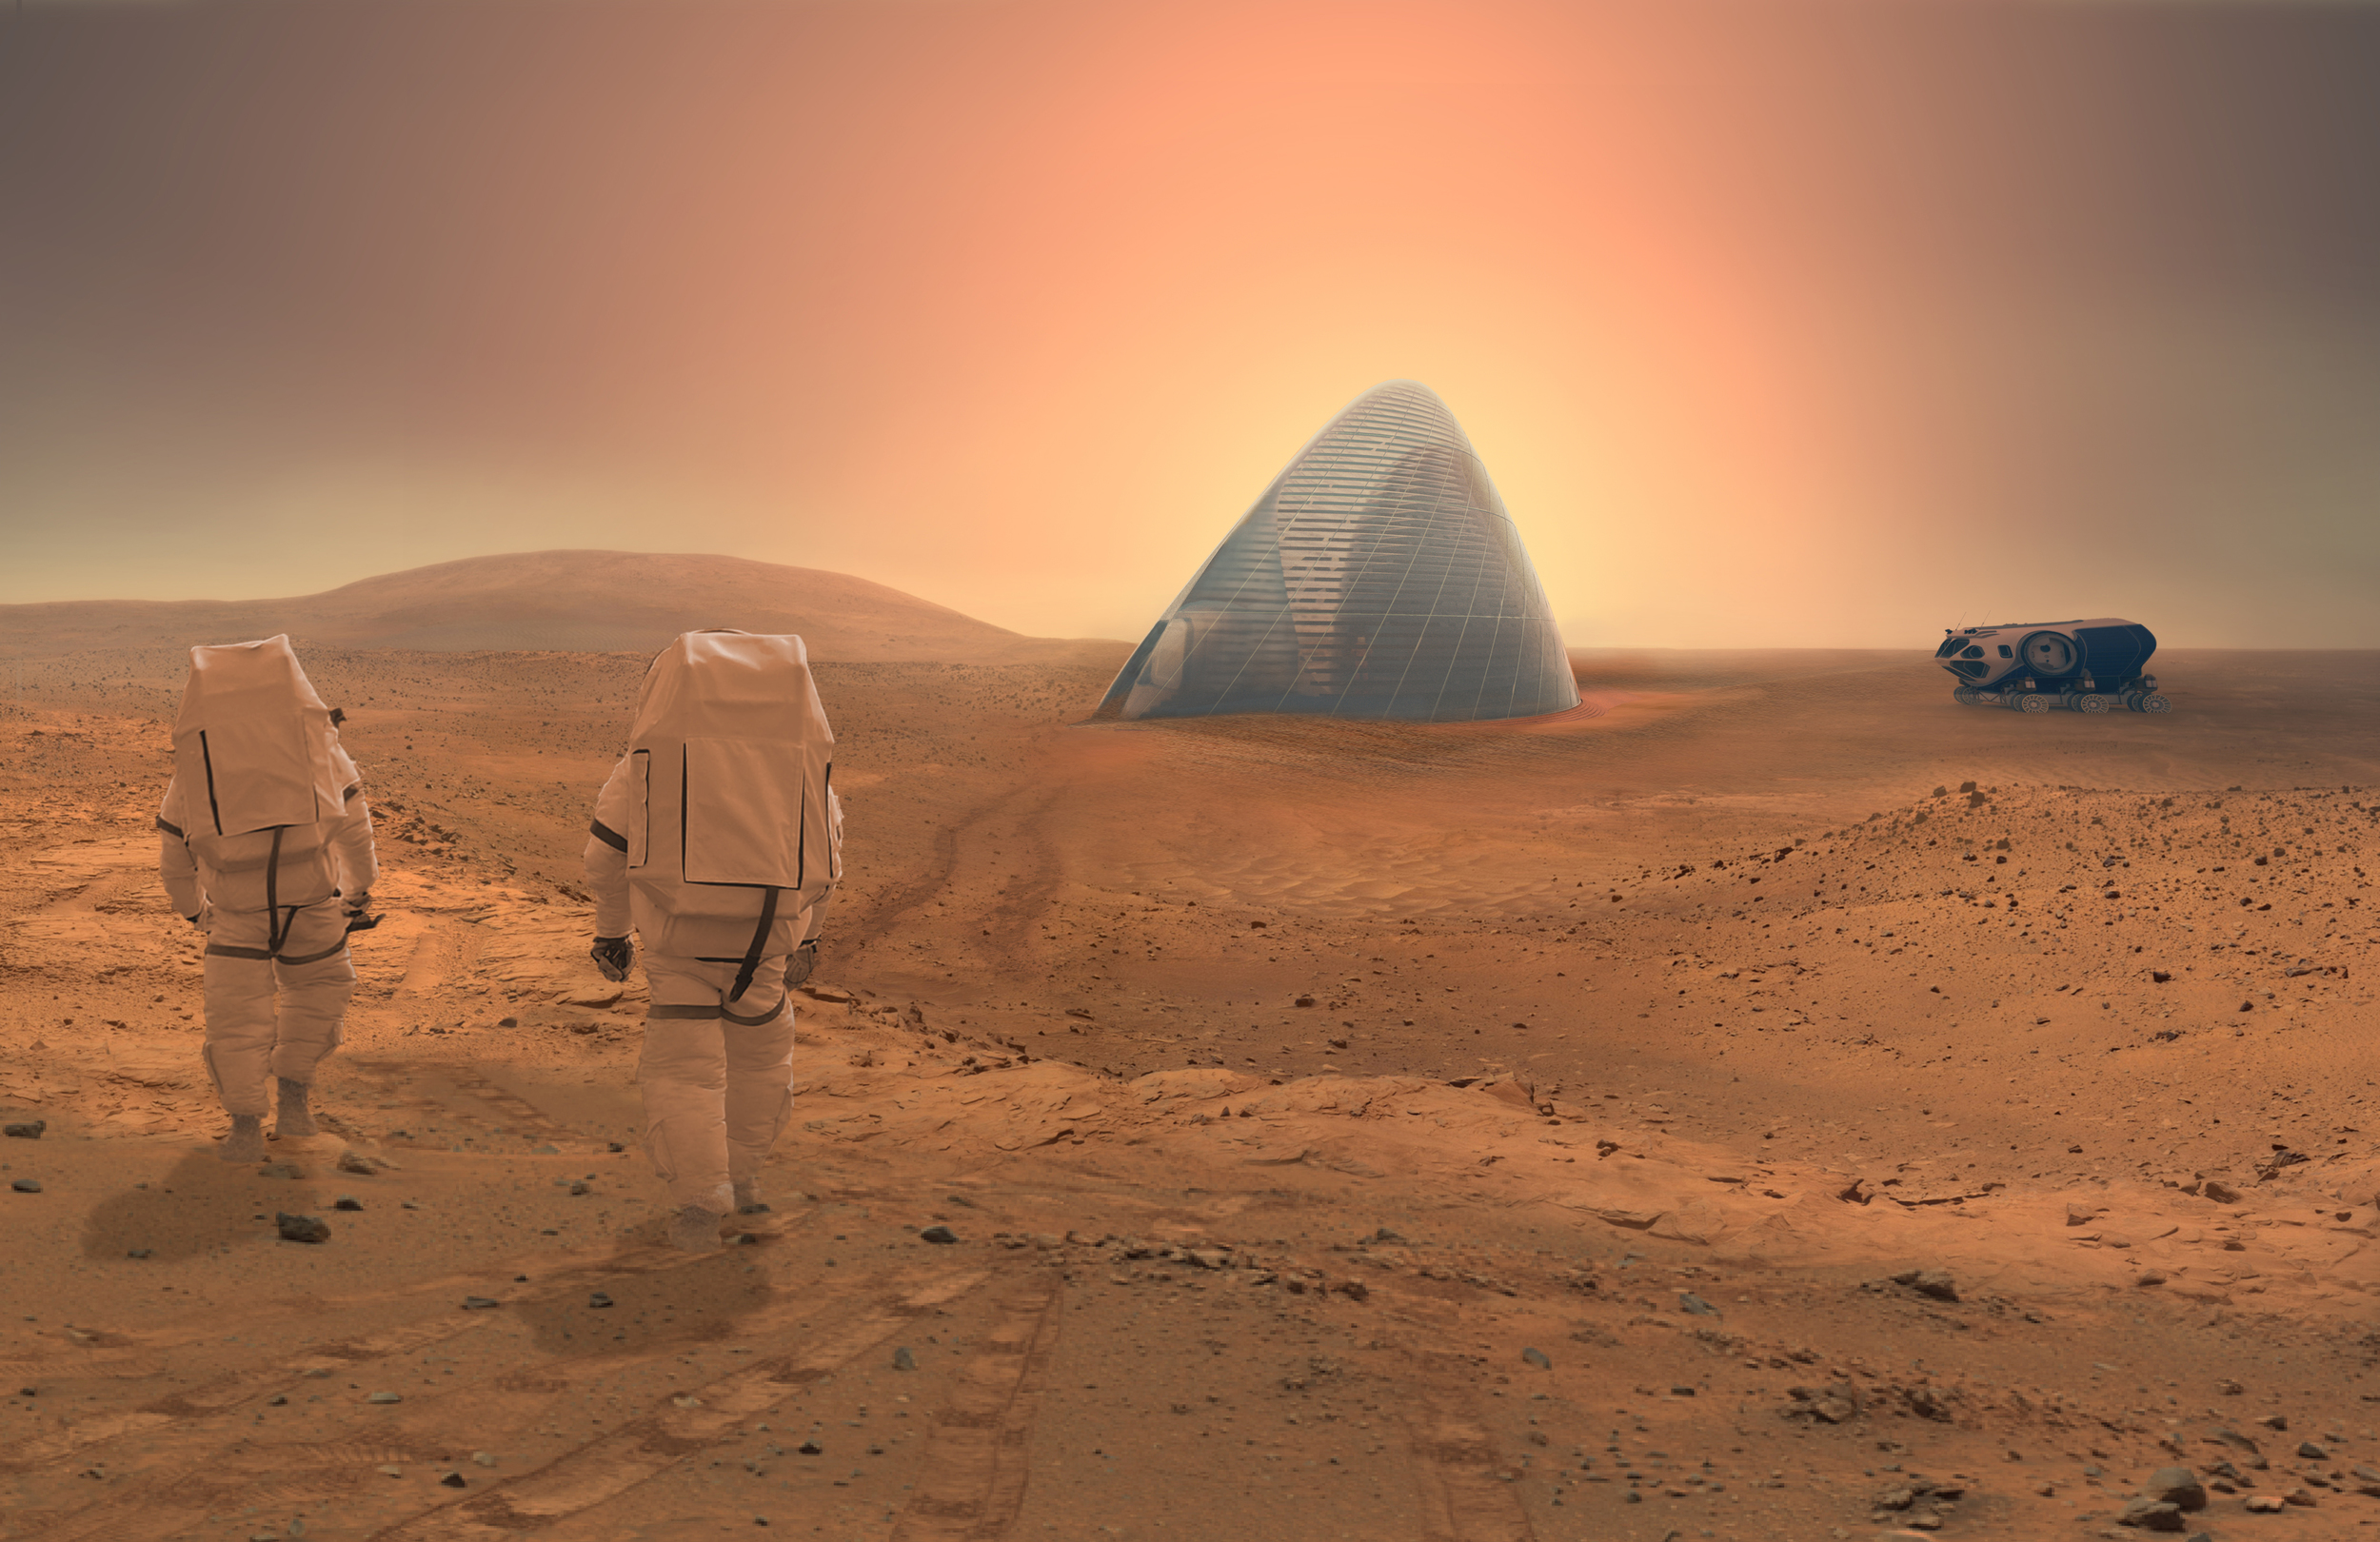 NASA is running a design competition to develop a 3-D model for a structure on Mars.